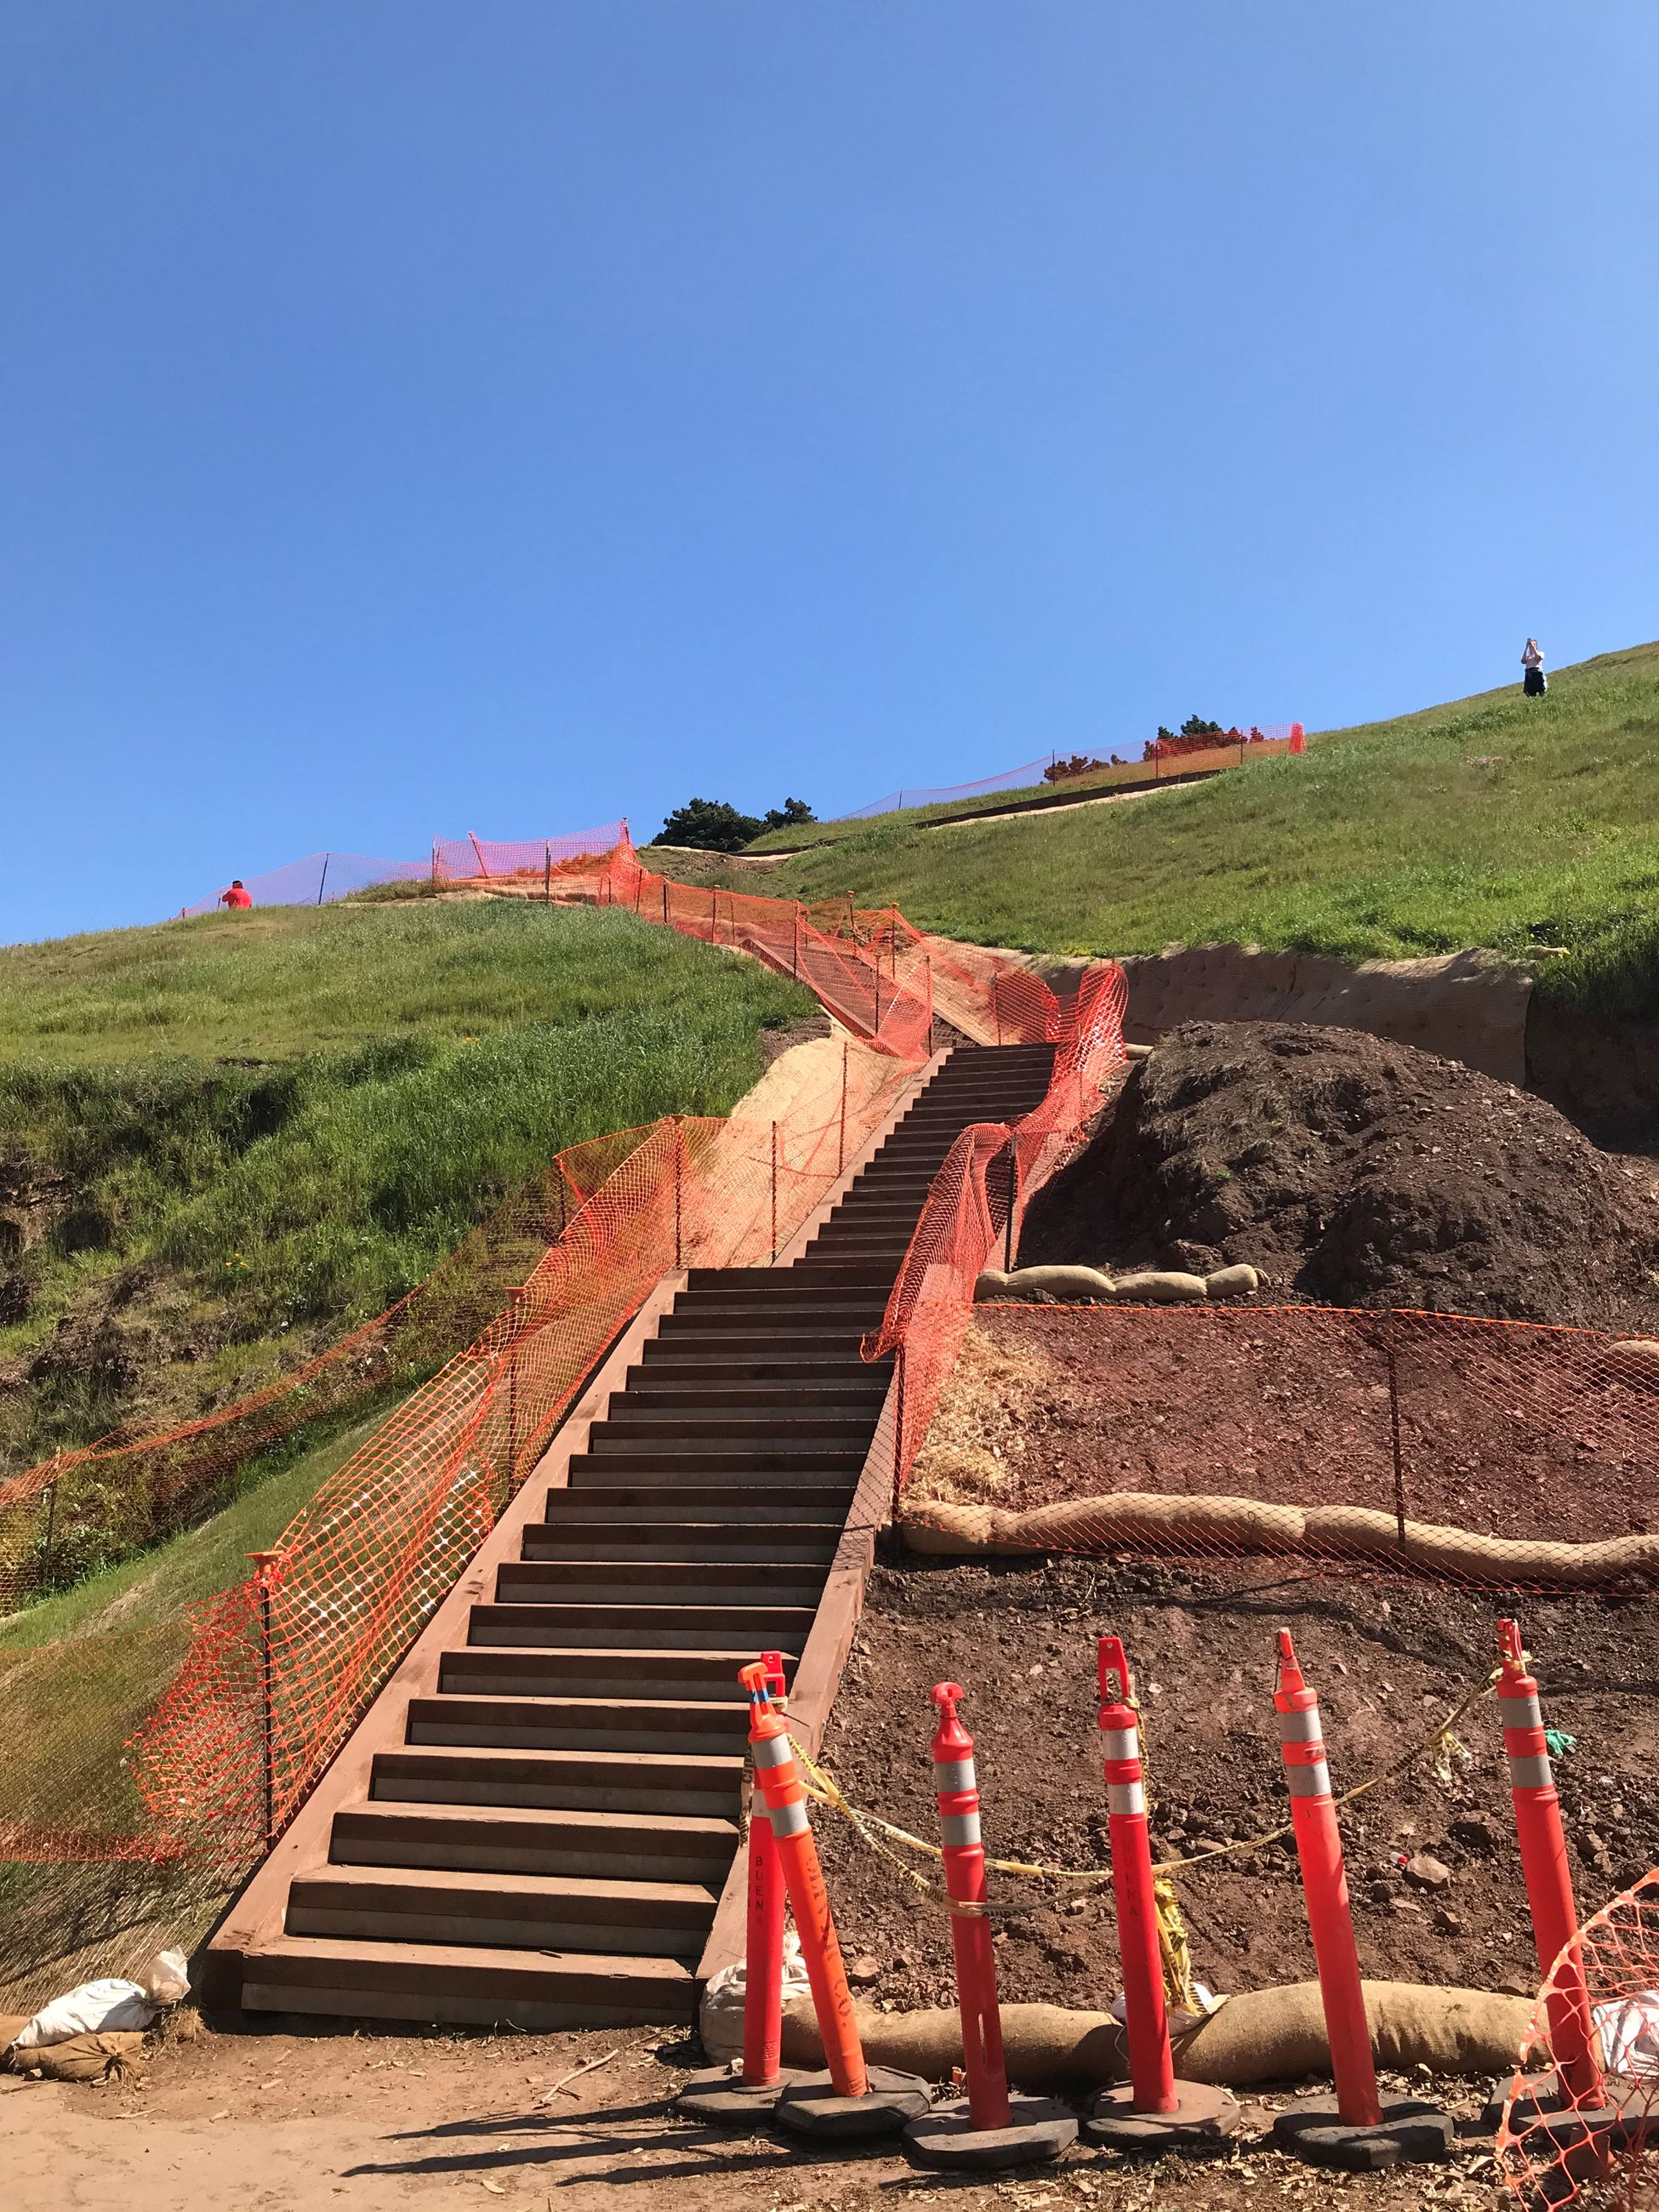 Bernal Heights trial under construction showing box steps with orange construction fencing on either